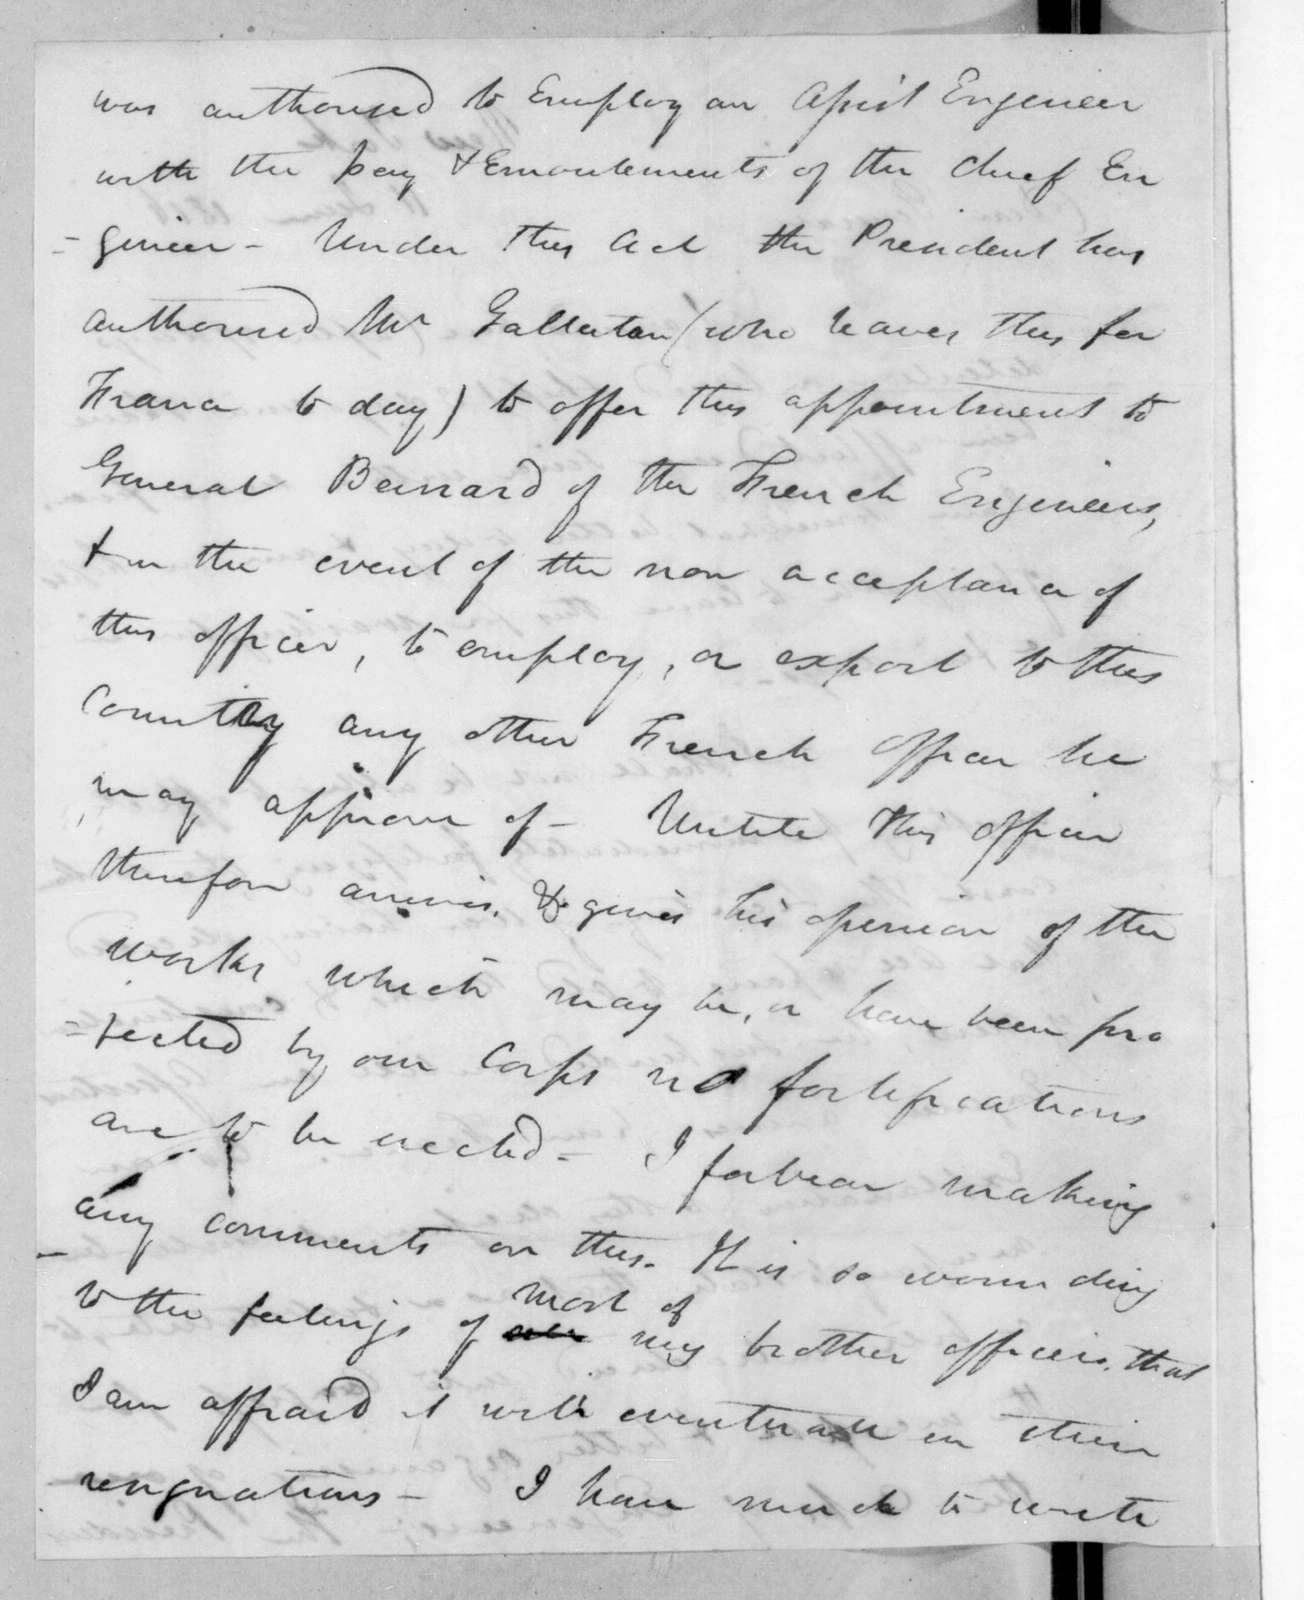 James Gadsden to Andrew Jackson, June 11, 1816